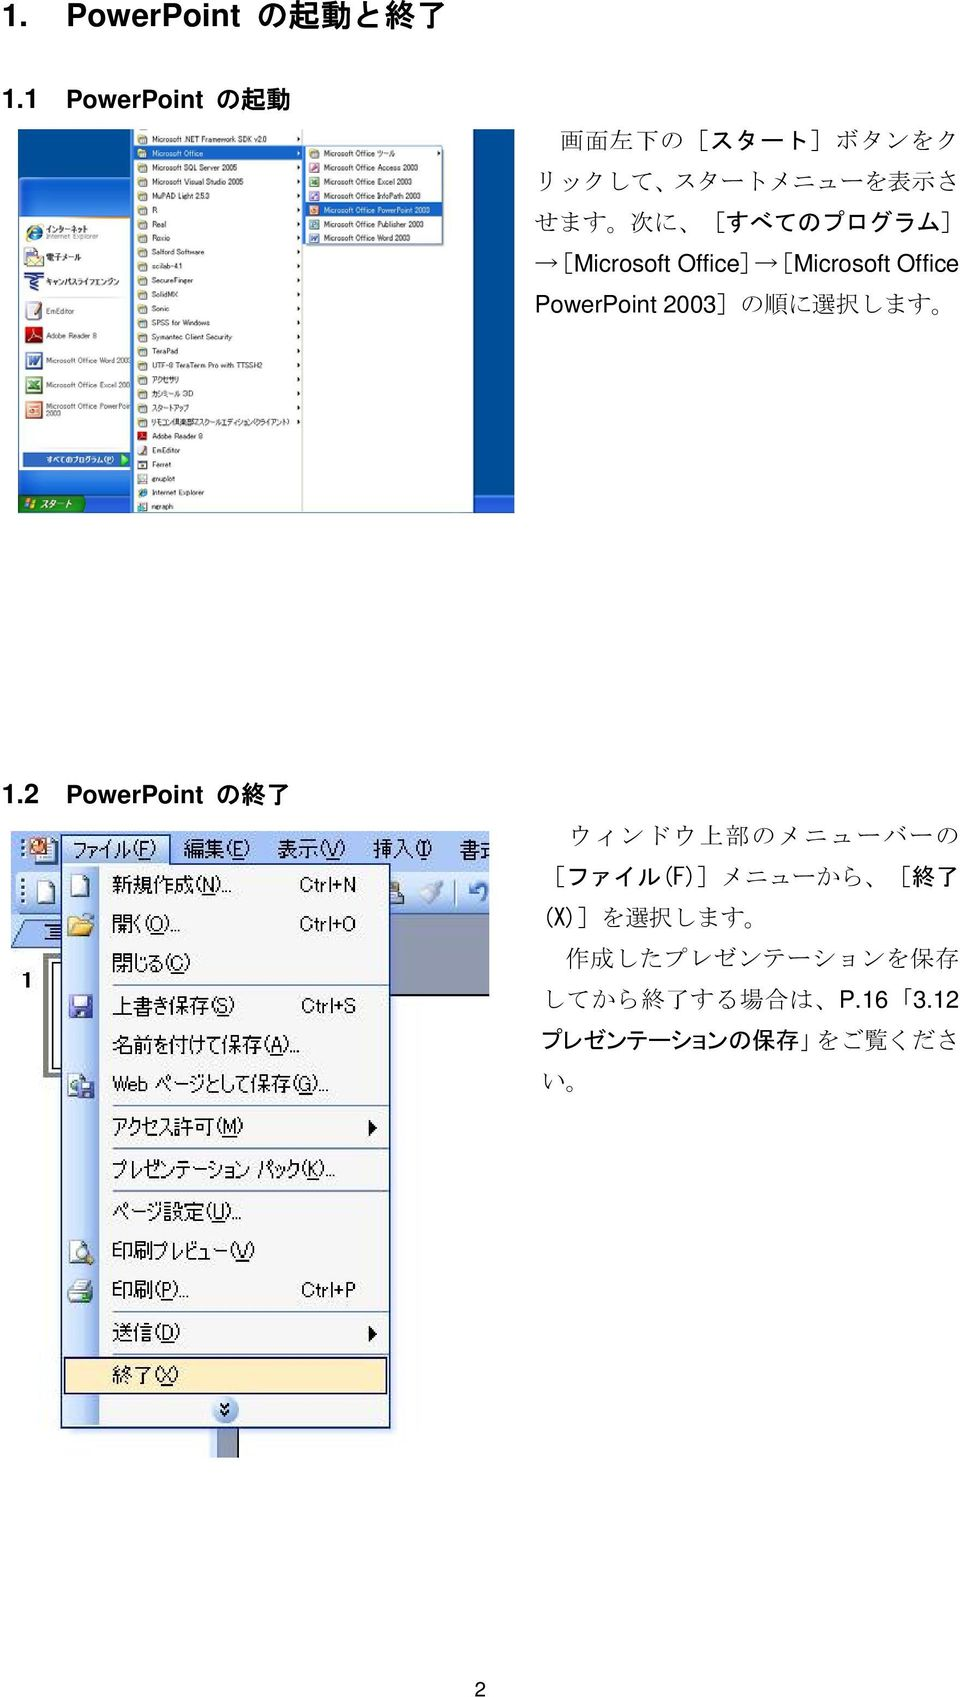 [Microsoft Office] [Microsoft Office PowerPoint 2003]の 順 に 選 択 します 1.